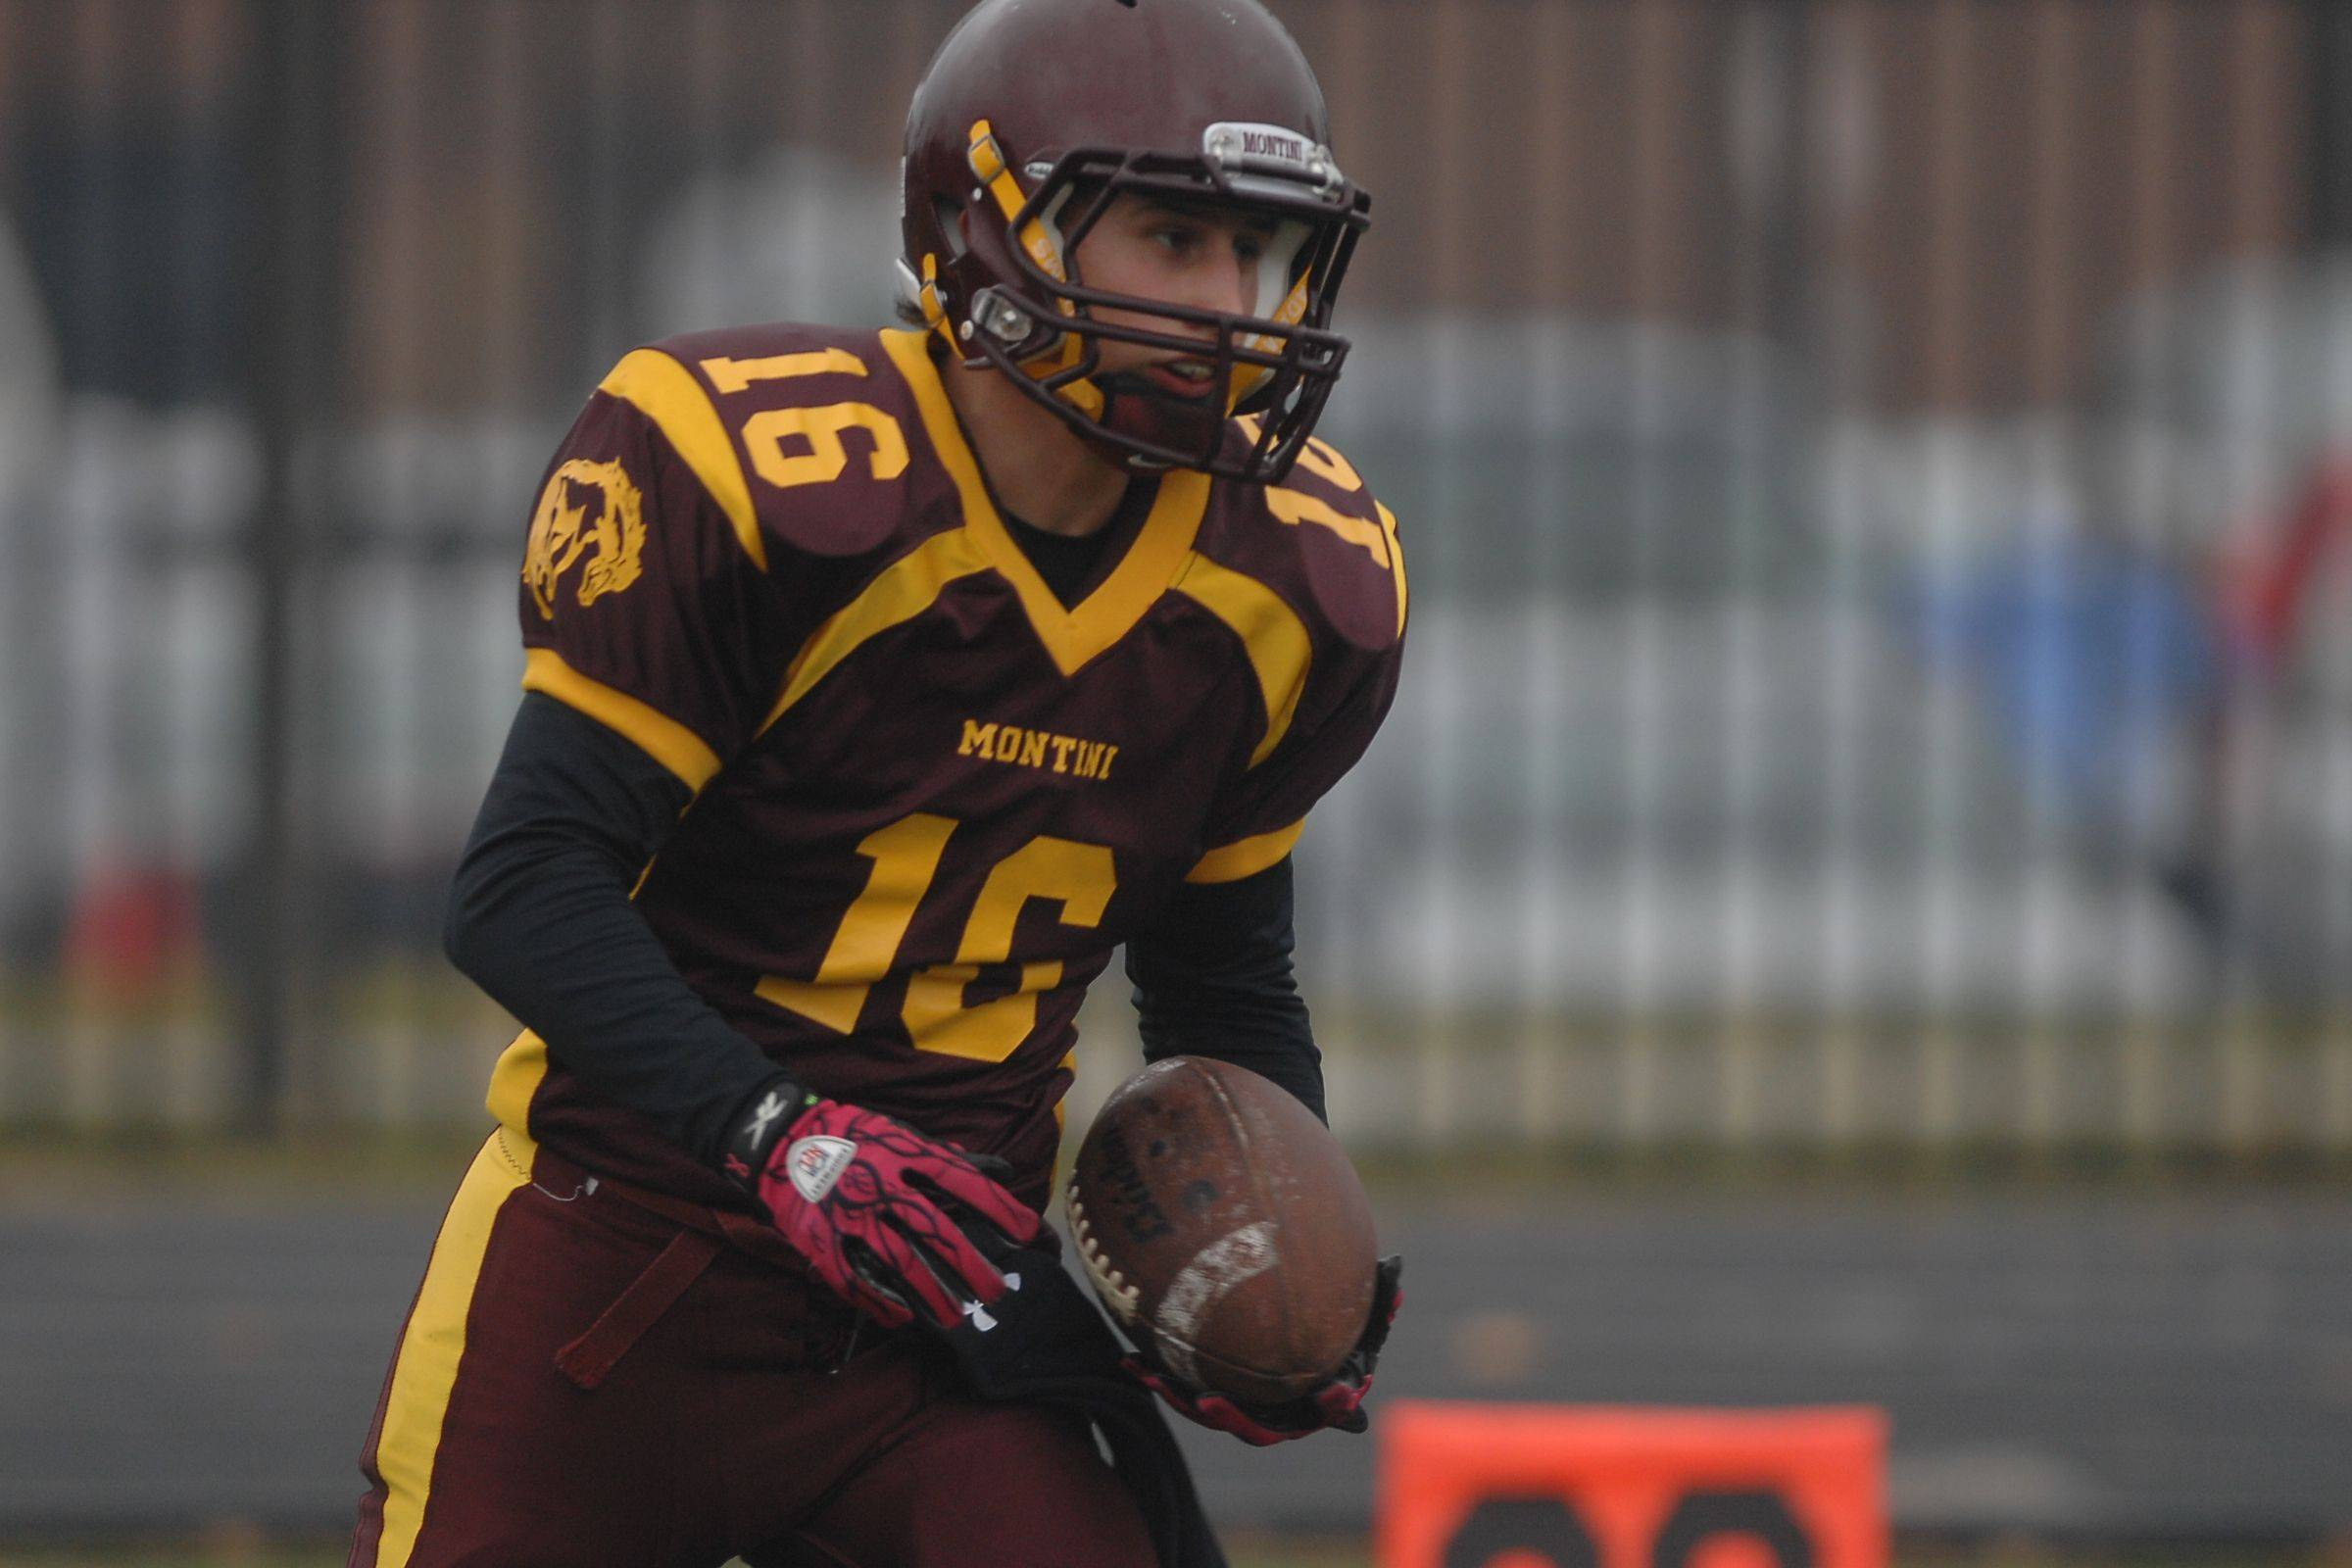 Playoffs � week three � Marian Cental vs. Montini football quarterfinal played at Elmhurst College.